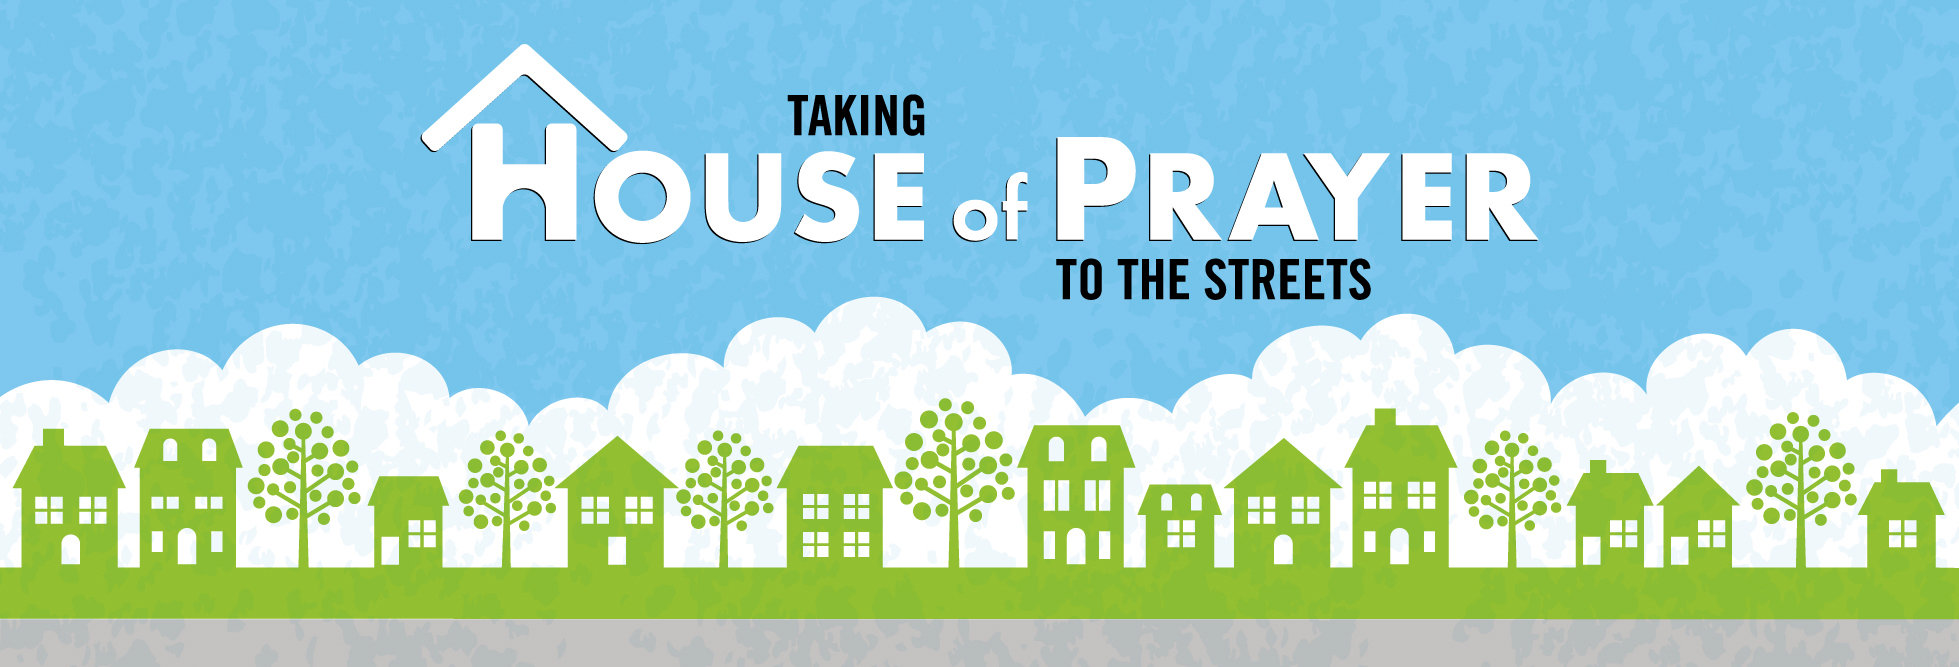 Taking House of Prayer to the Streets